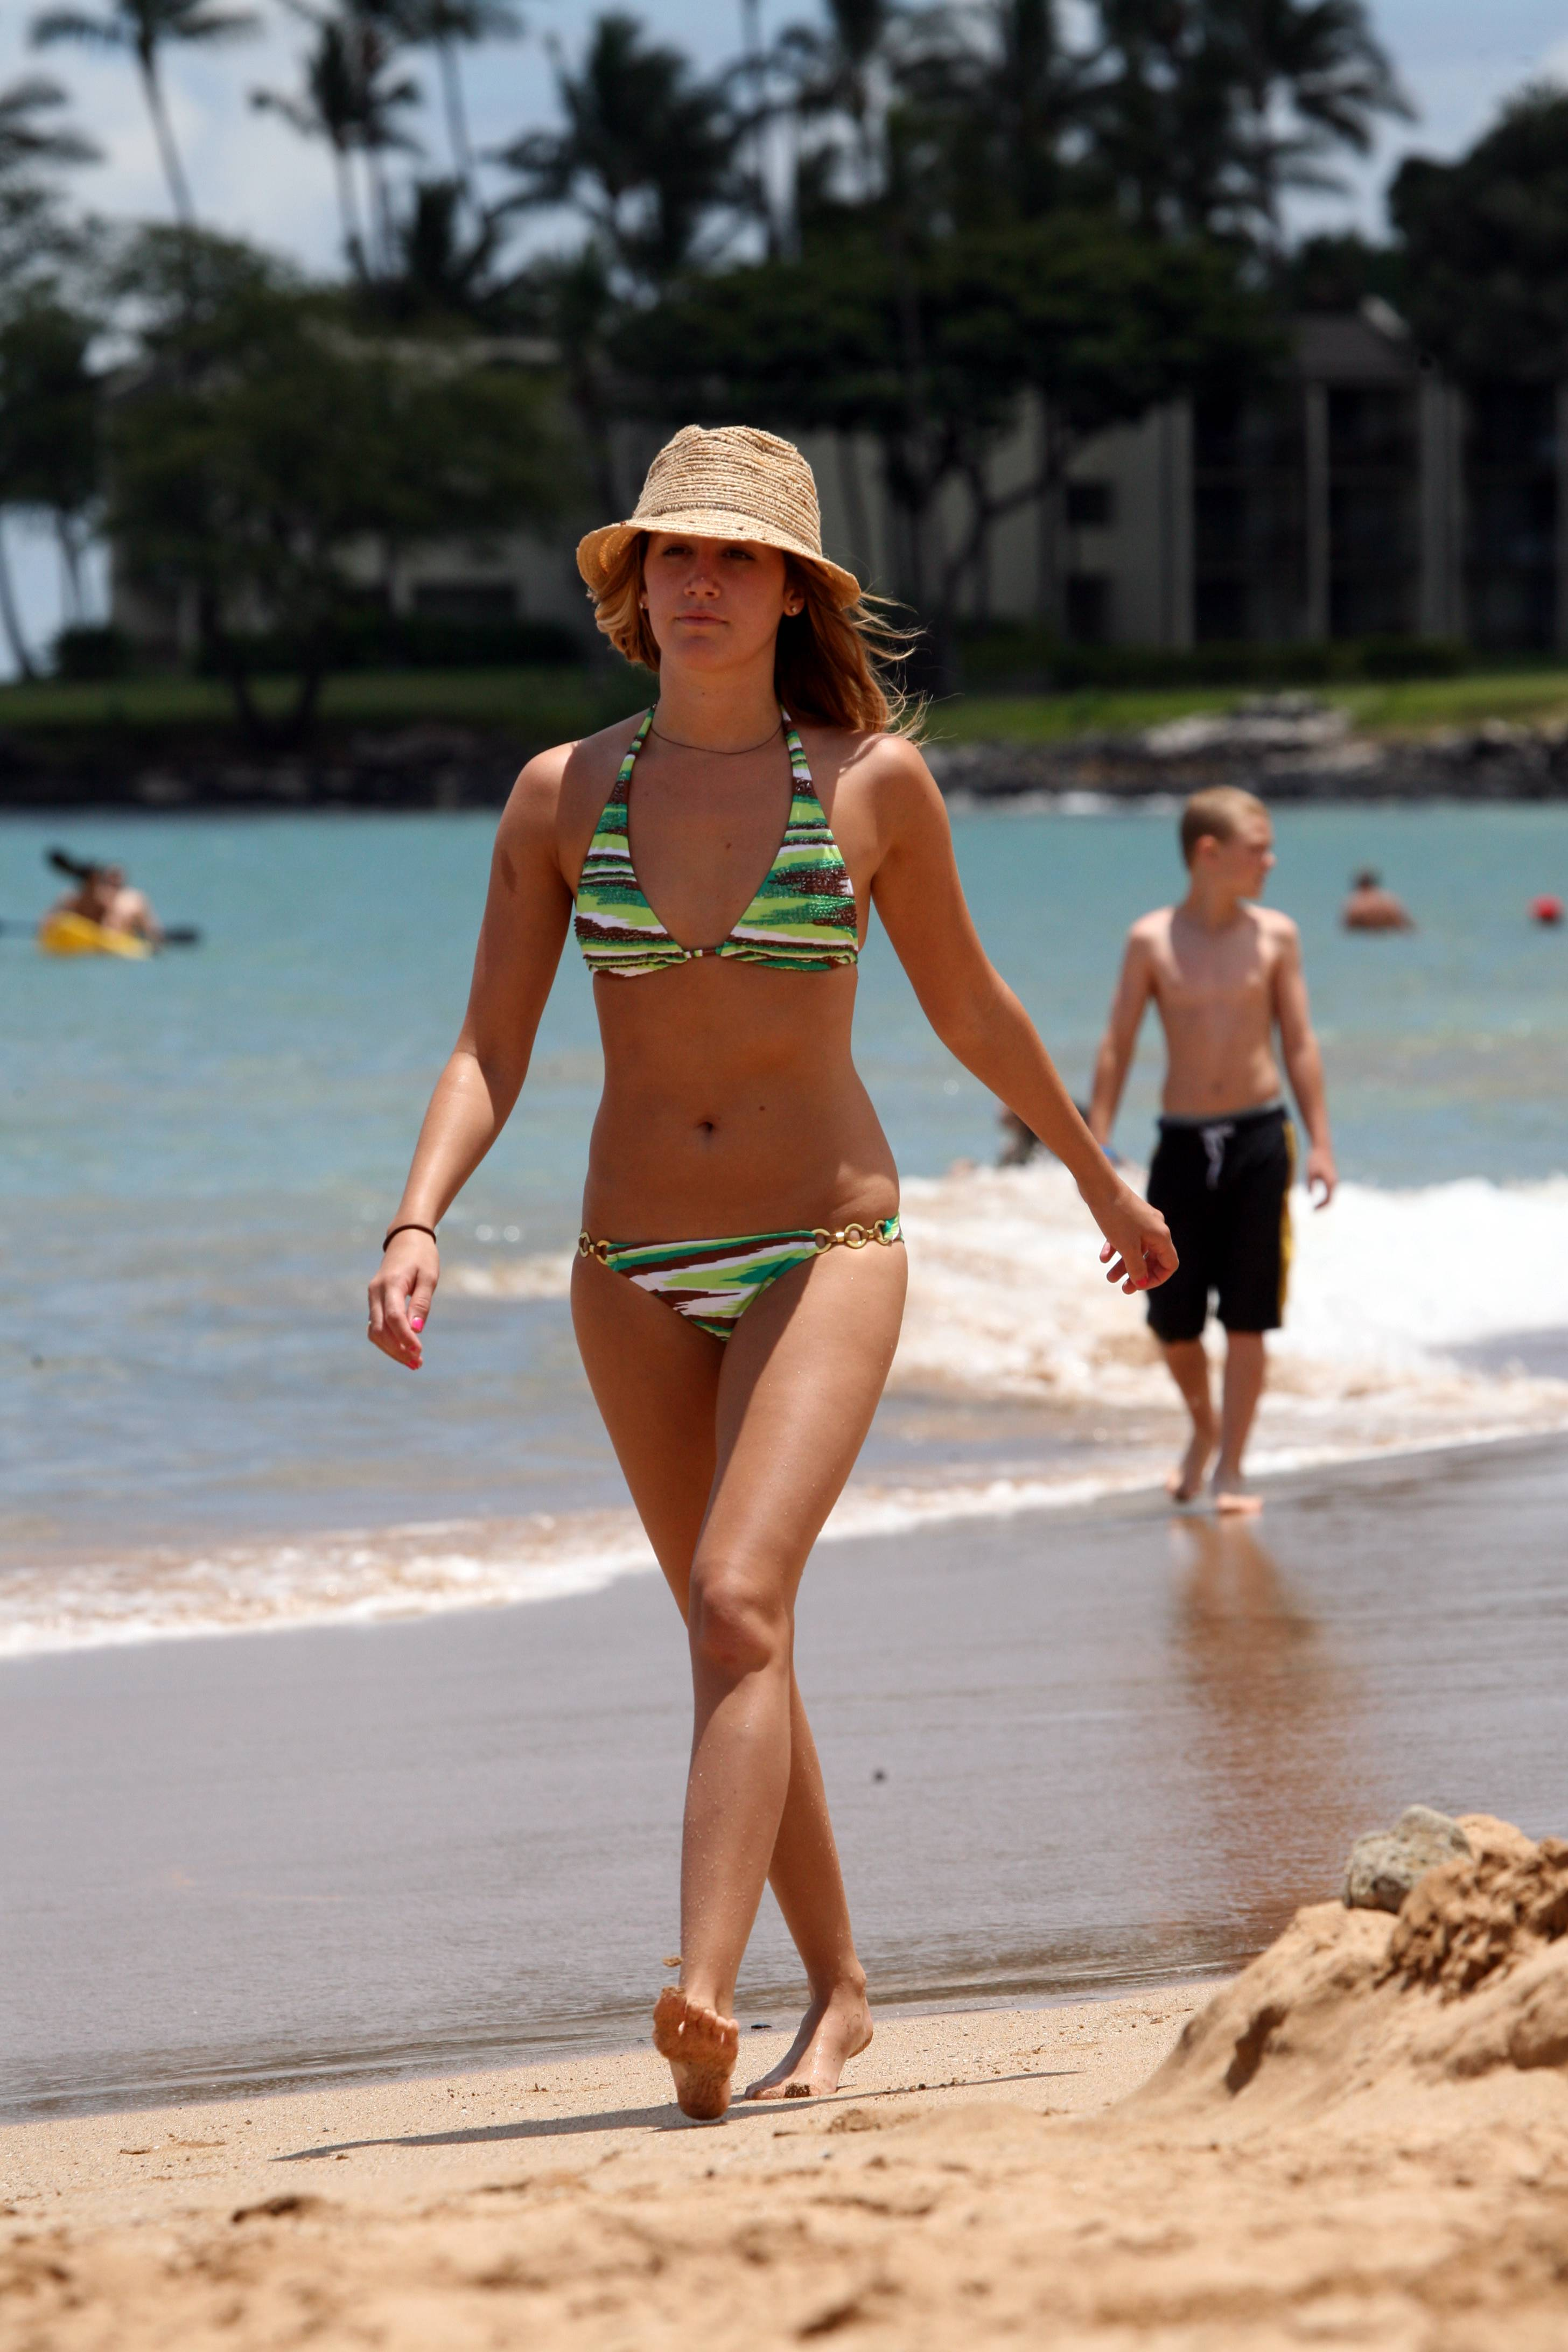 60538_Ashley_Tisdale_2008-07-02_-_in_Bikini_Celebrates_23rd_Birthday_in_Hawaii_122_1061lo.jpg